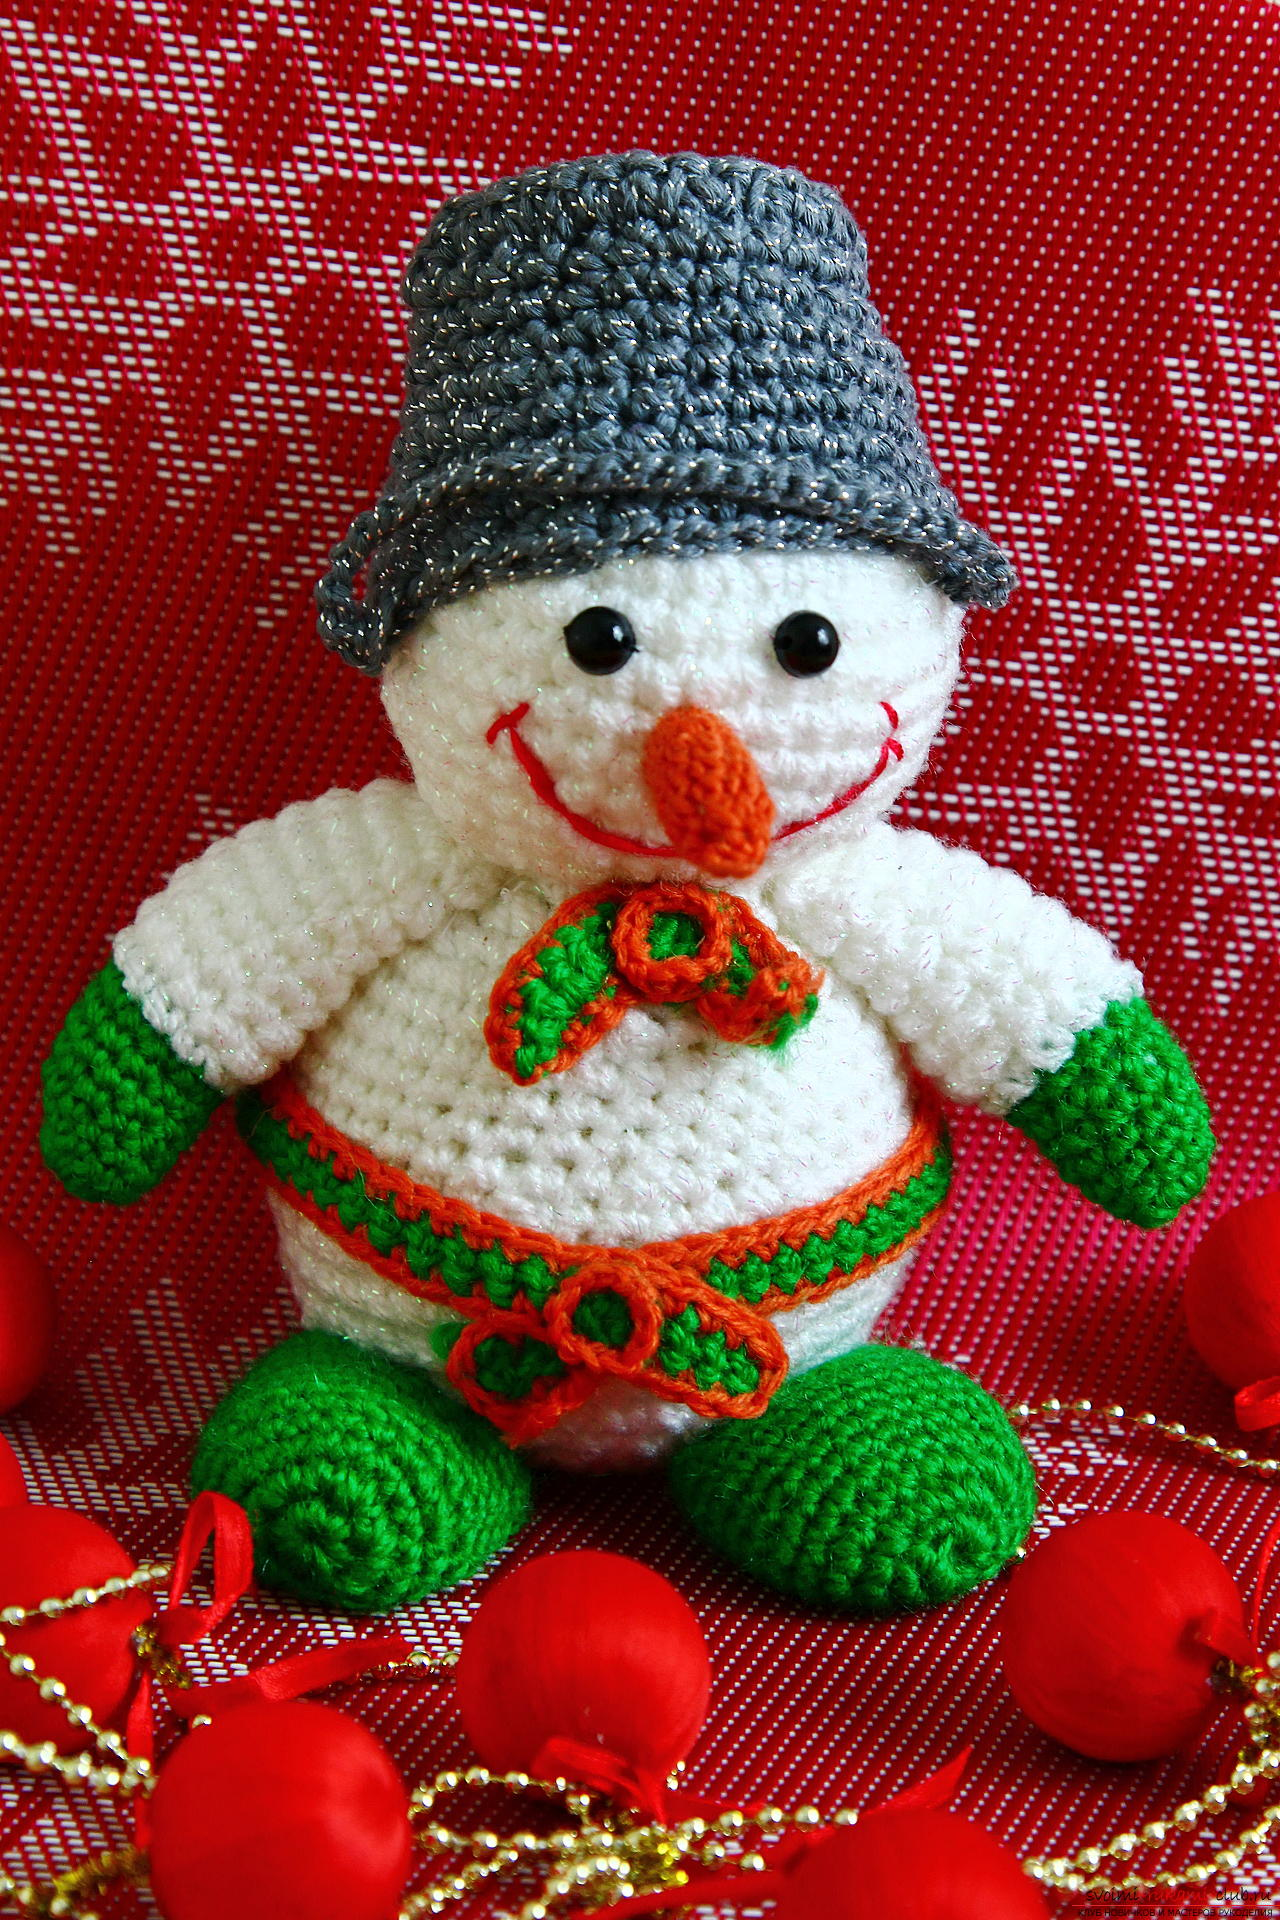 We knit a New Year's snowman with a crochet with a detailed master class, supplemented by step-by-step photos. Photo number 35